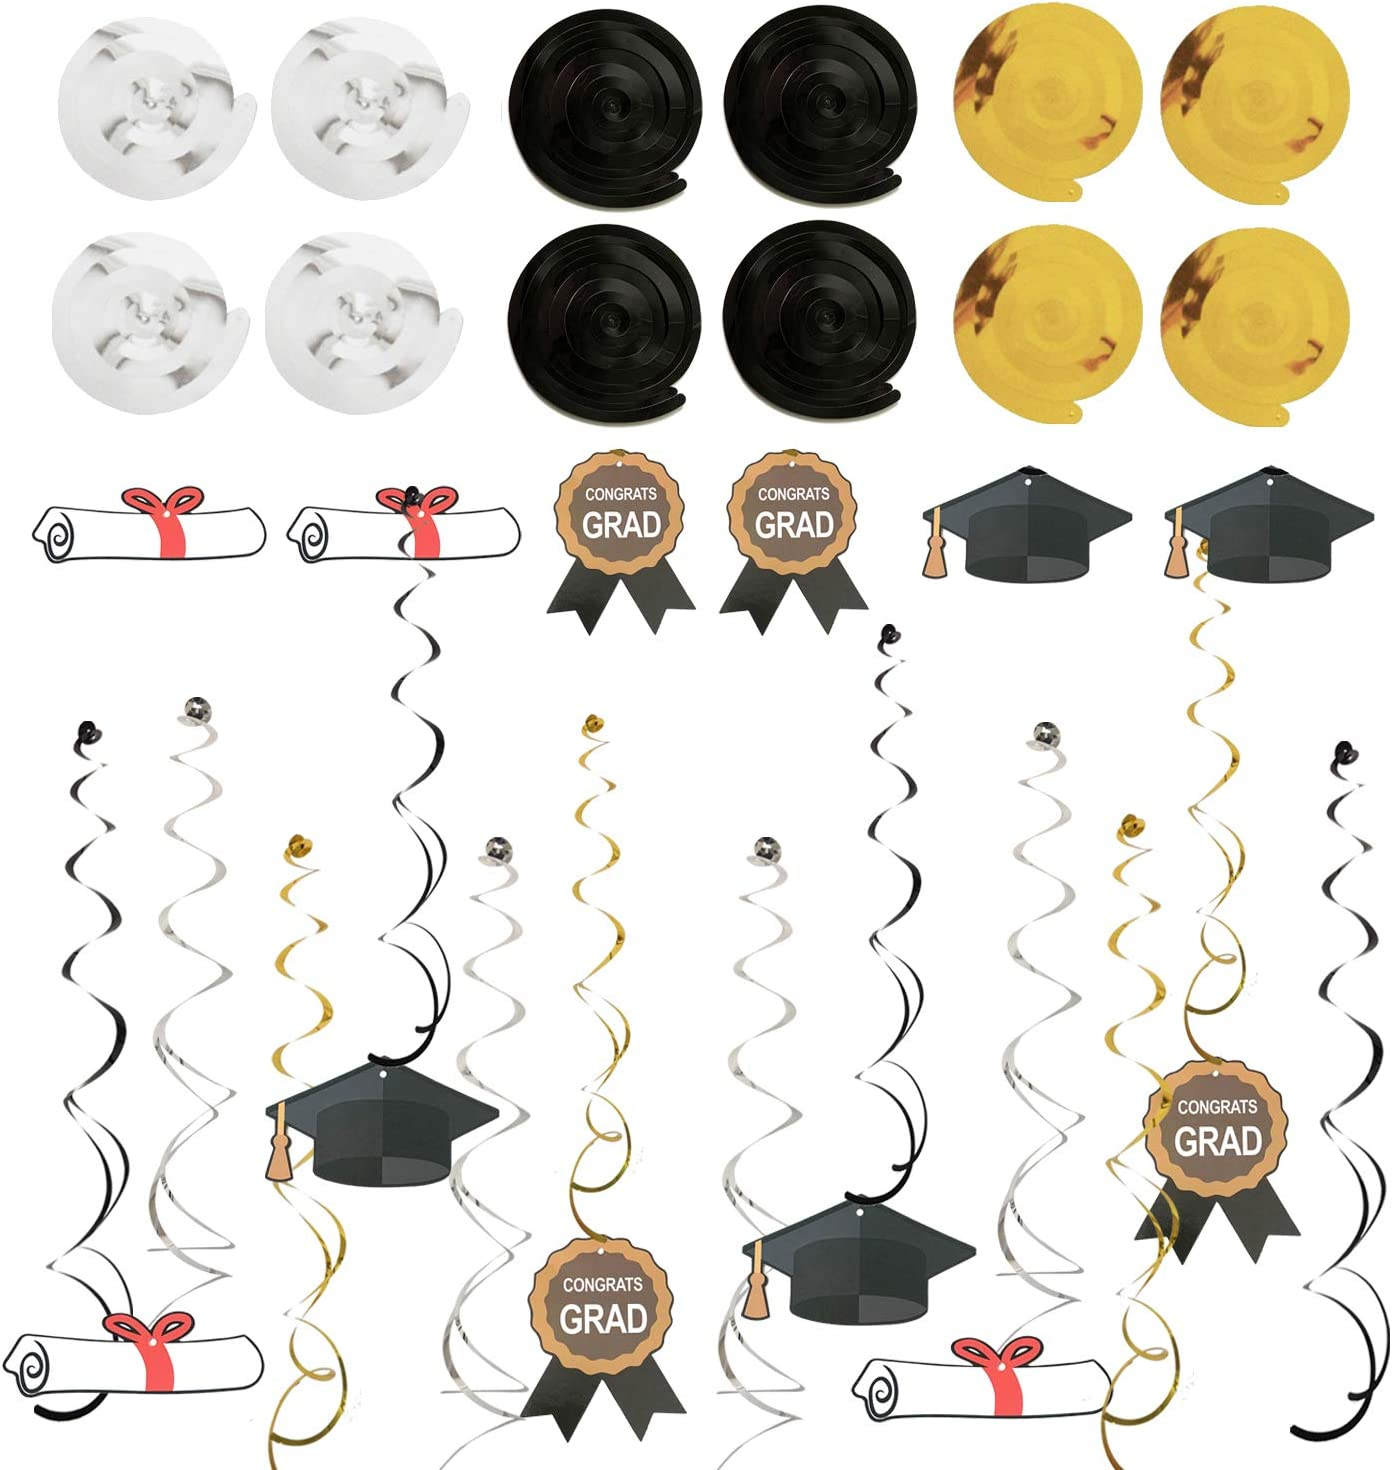 ZERODECO Graduation Decorations Black and Gold We Are So Proud Of You Banner Paper Pompom Fan Hanging Swirls Graduation Confetti Paper Garland Party Balloons for Grad Party Decoration Supplies